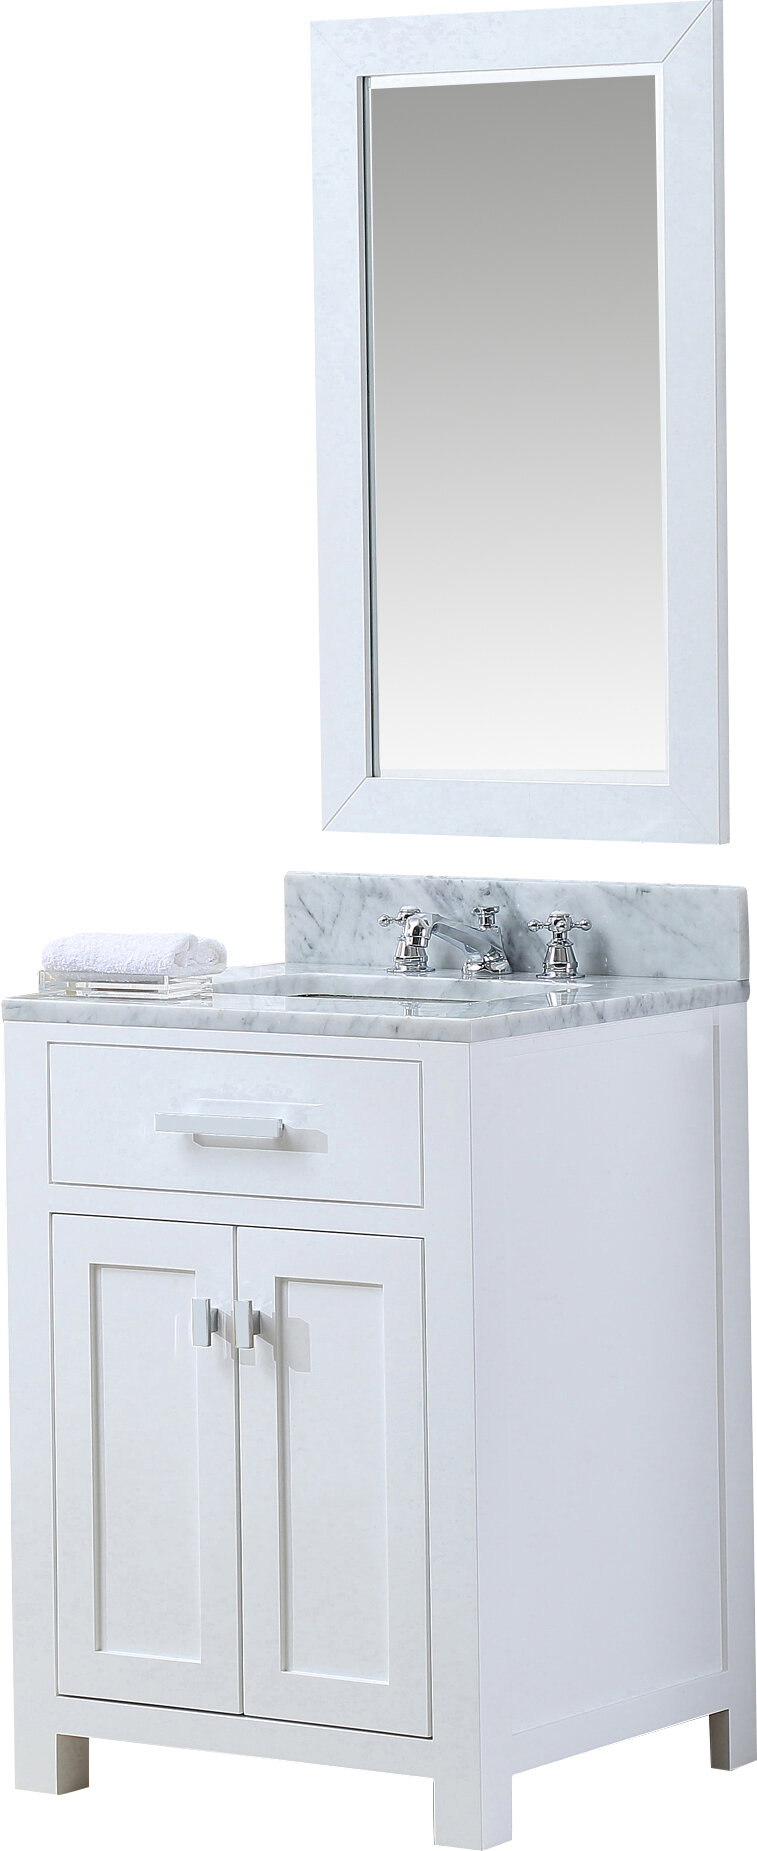 Andover Mills Raven 30 Single Bathroom Vanity Set Reviews